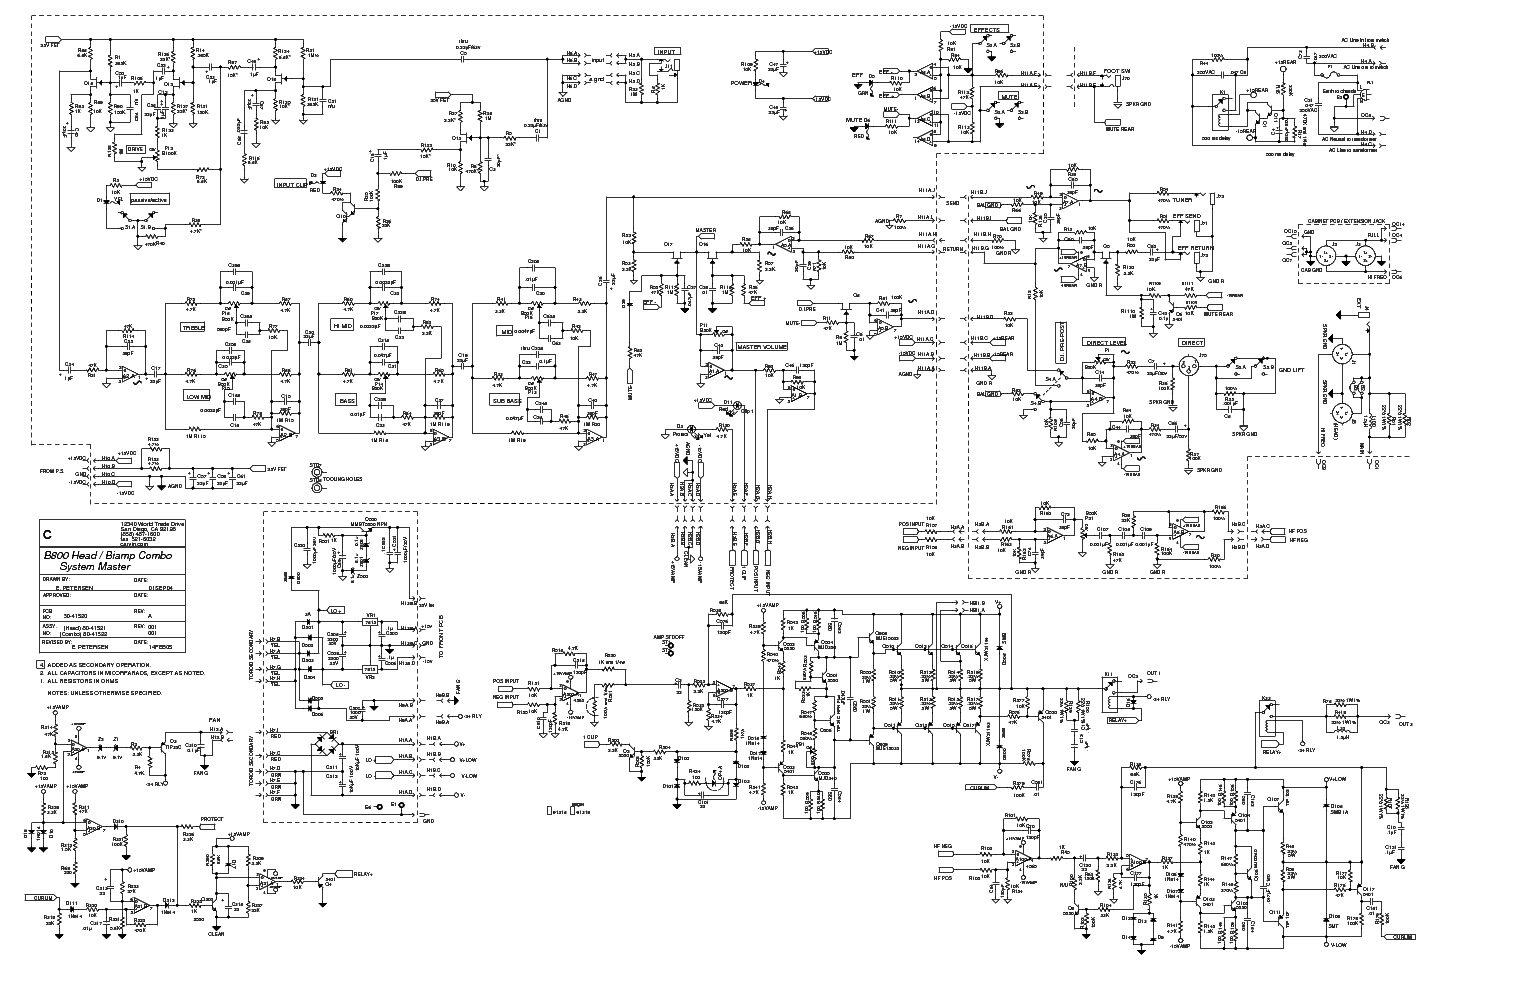 carvin legacy schematic wiring diagram rh s8 ruthdahm de carvin vintage 16 manual carvin vintage 16 head manual